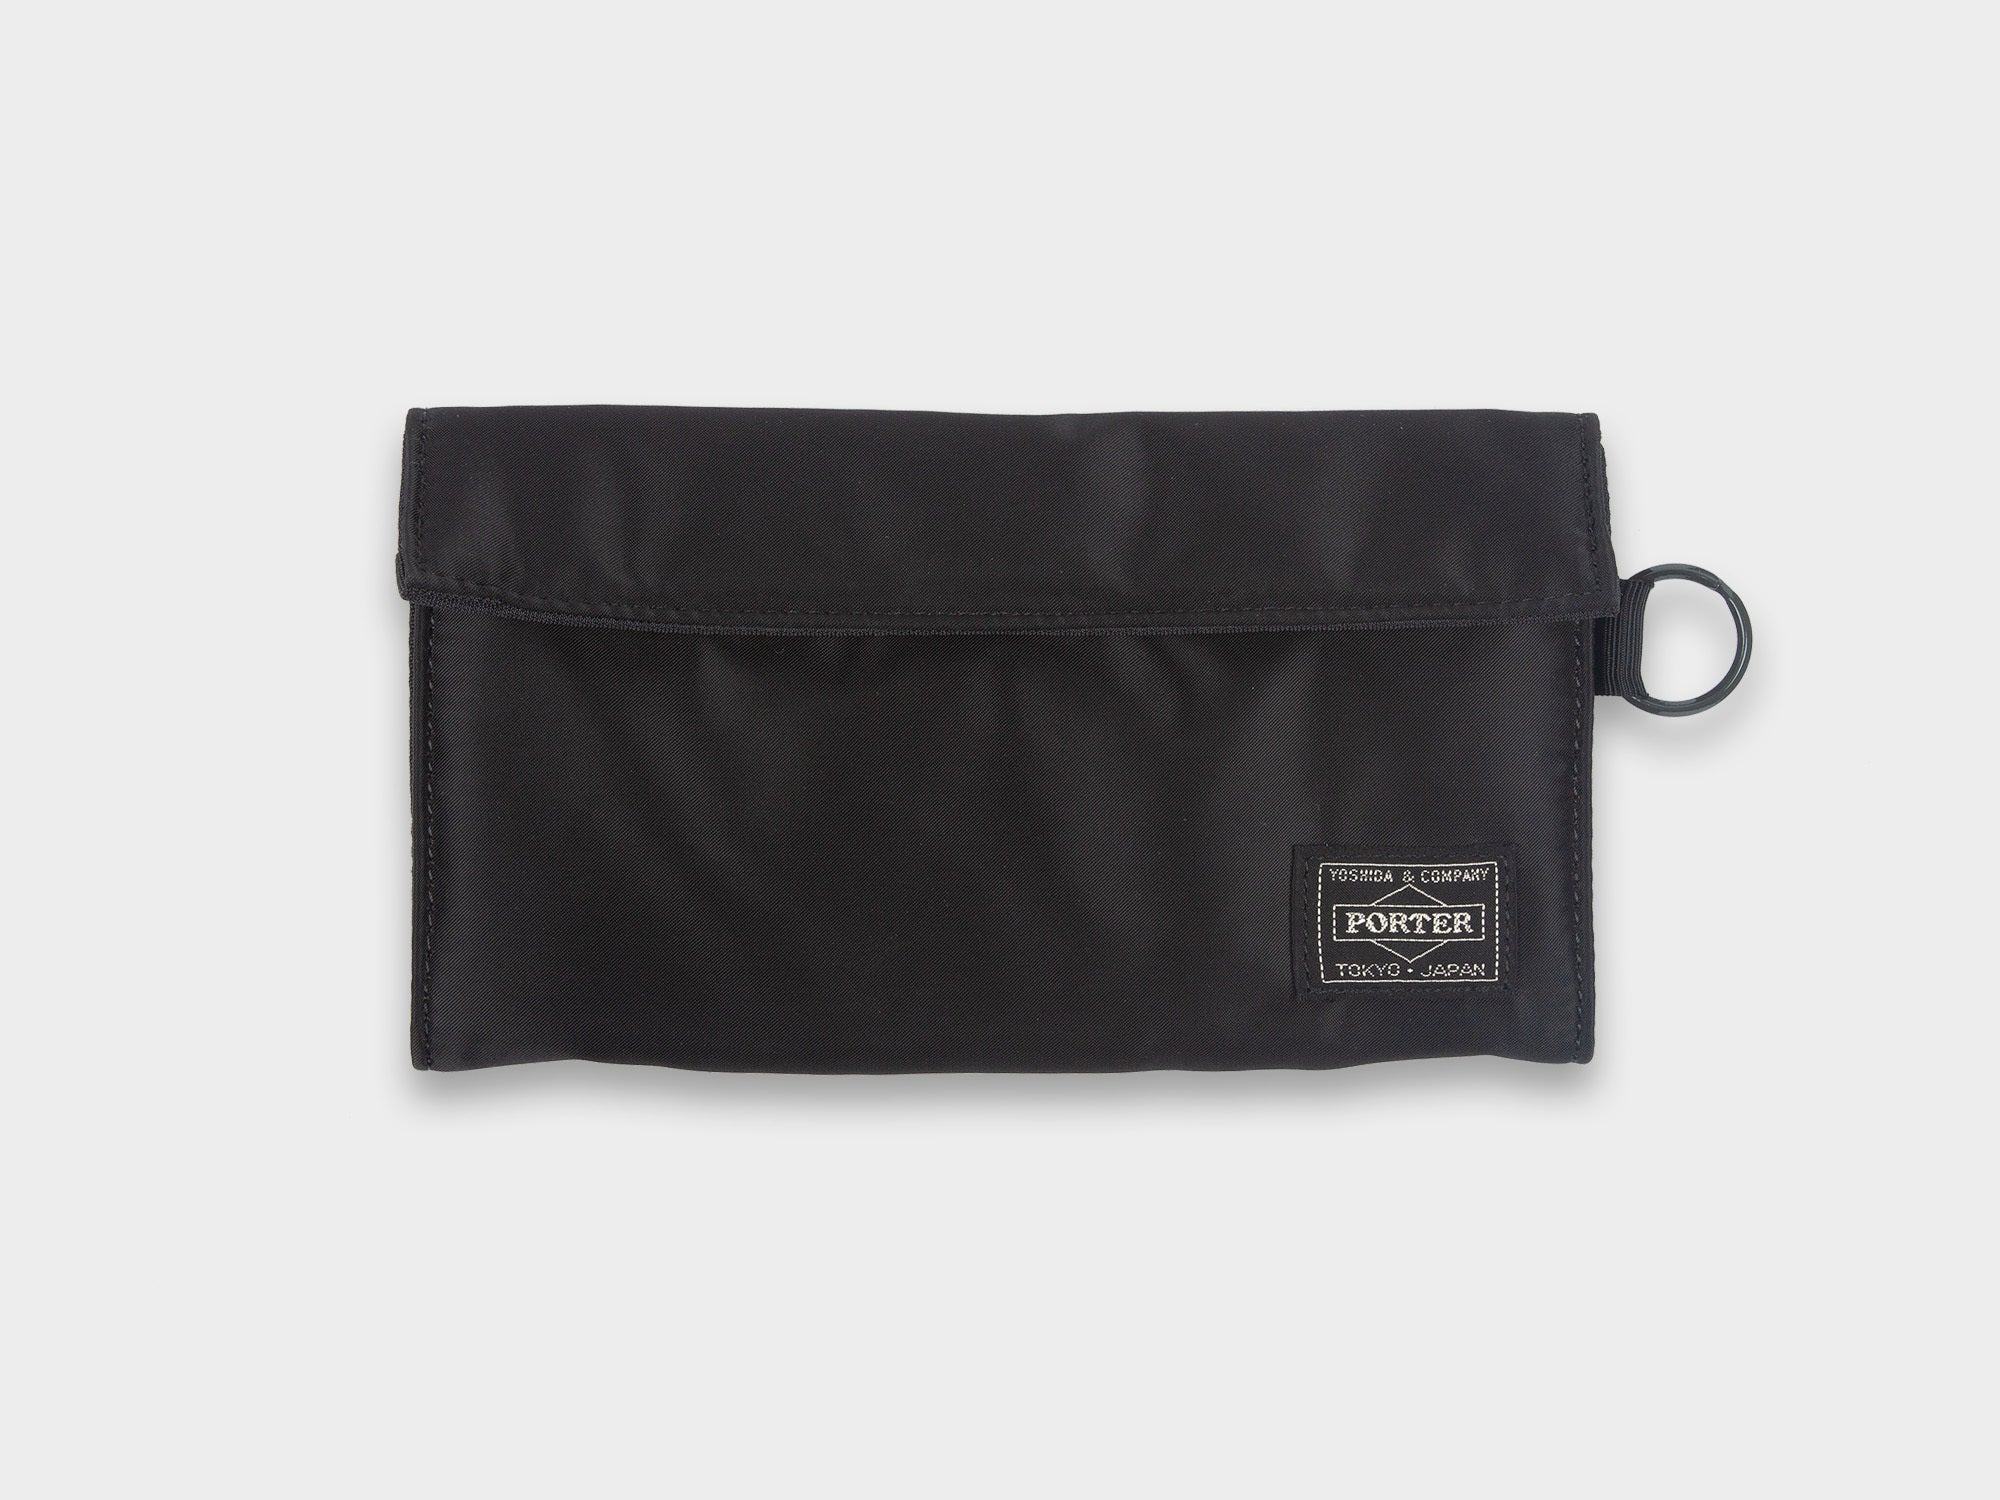 PORTER TANKER WALLET LONG [BLACK]